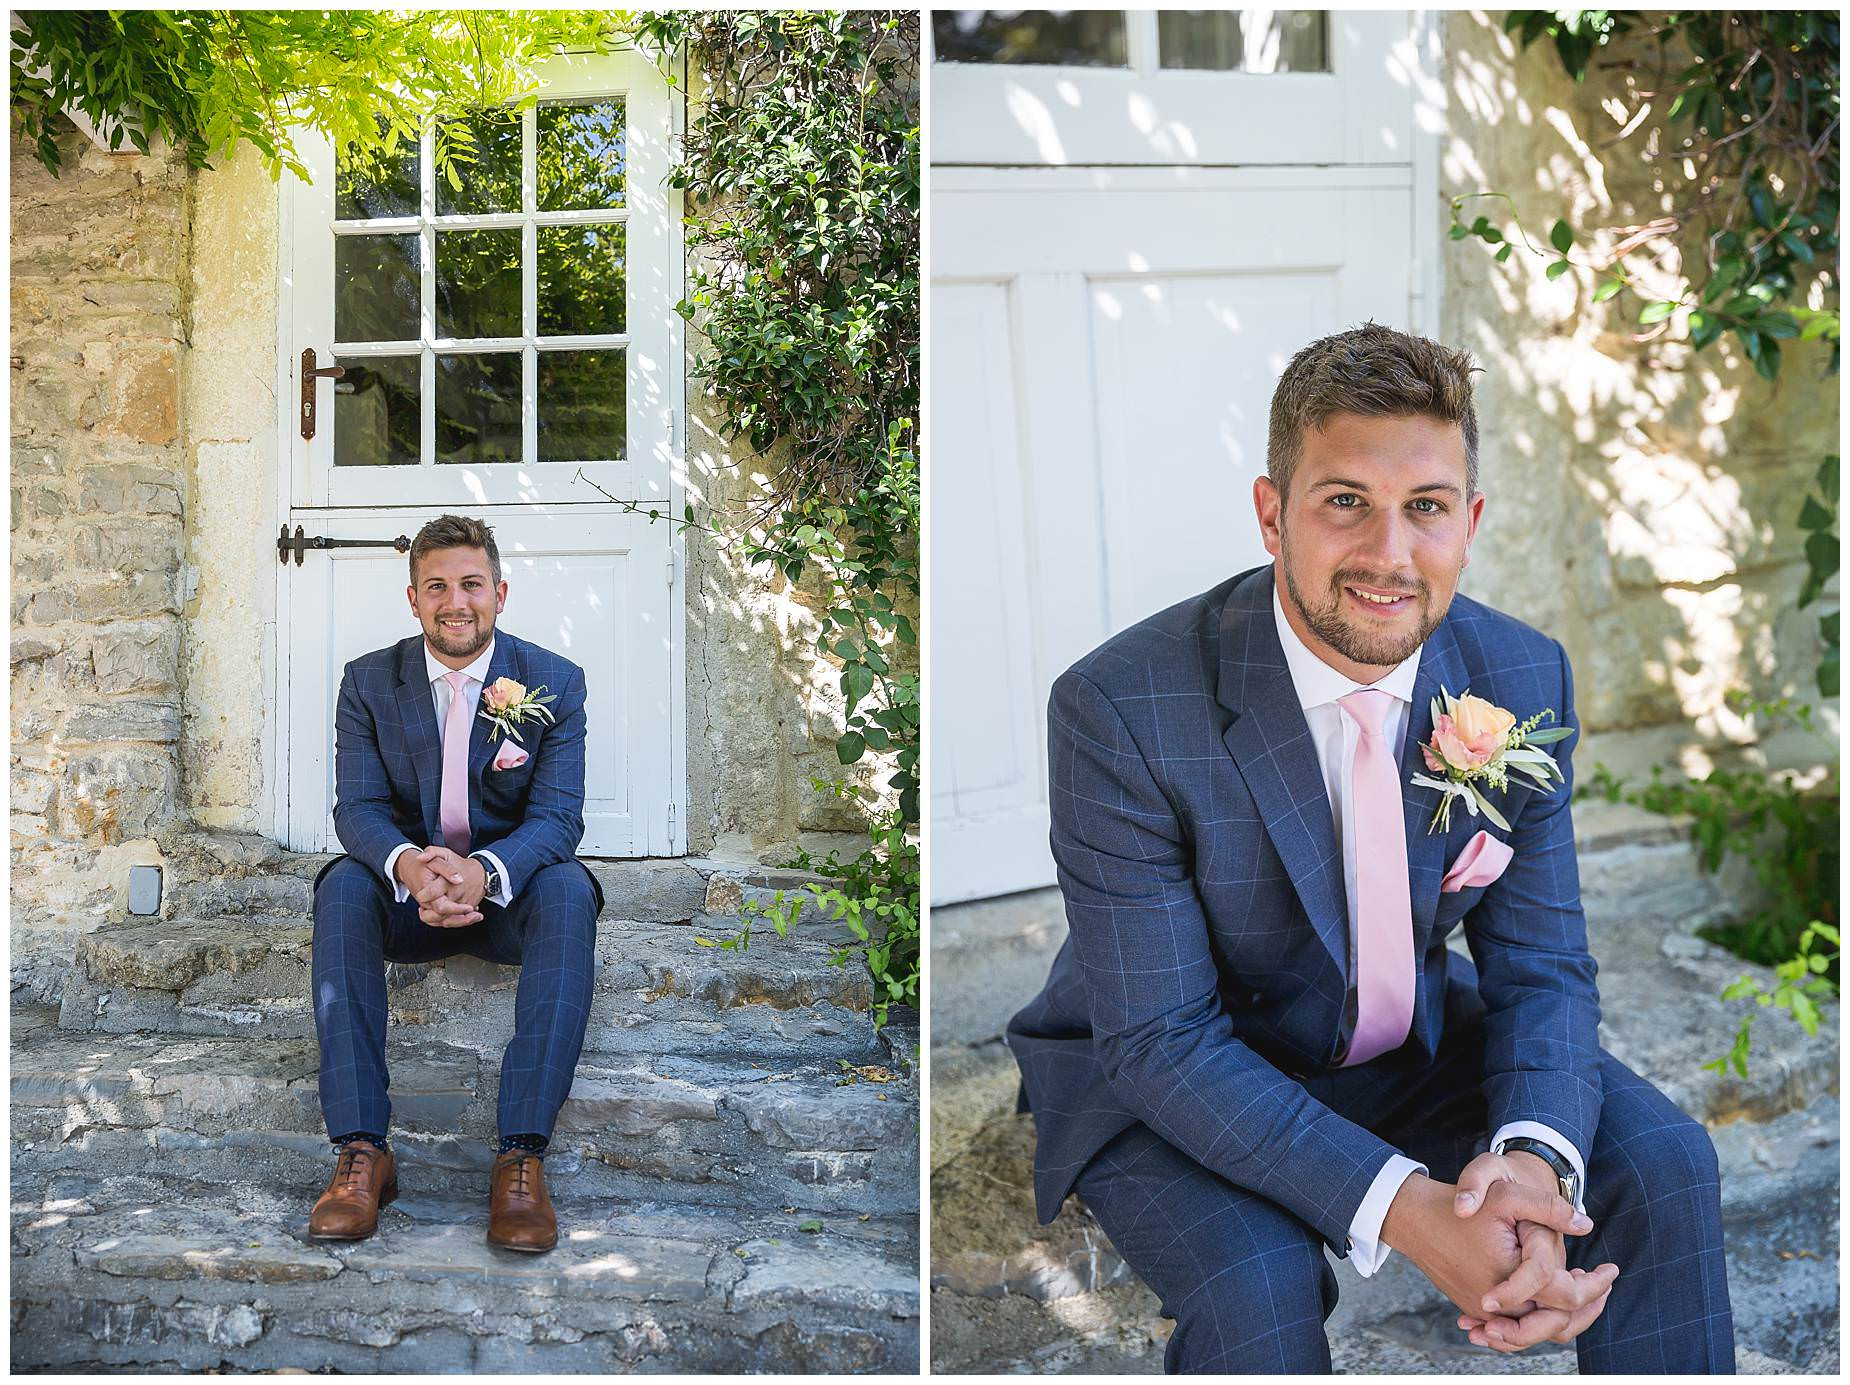 Groom ready for his Domaine Saint Germain Wedding